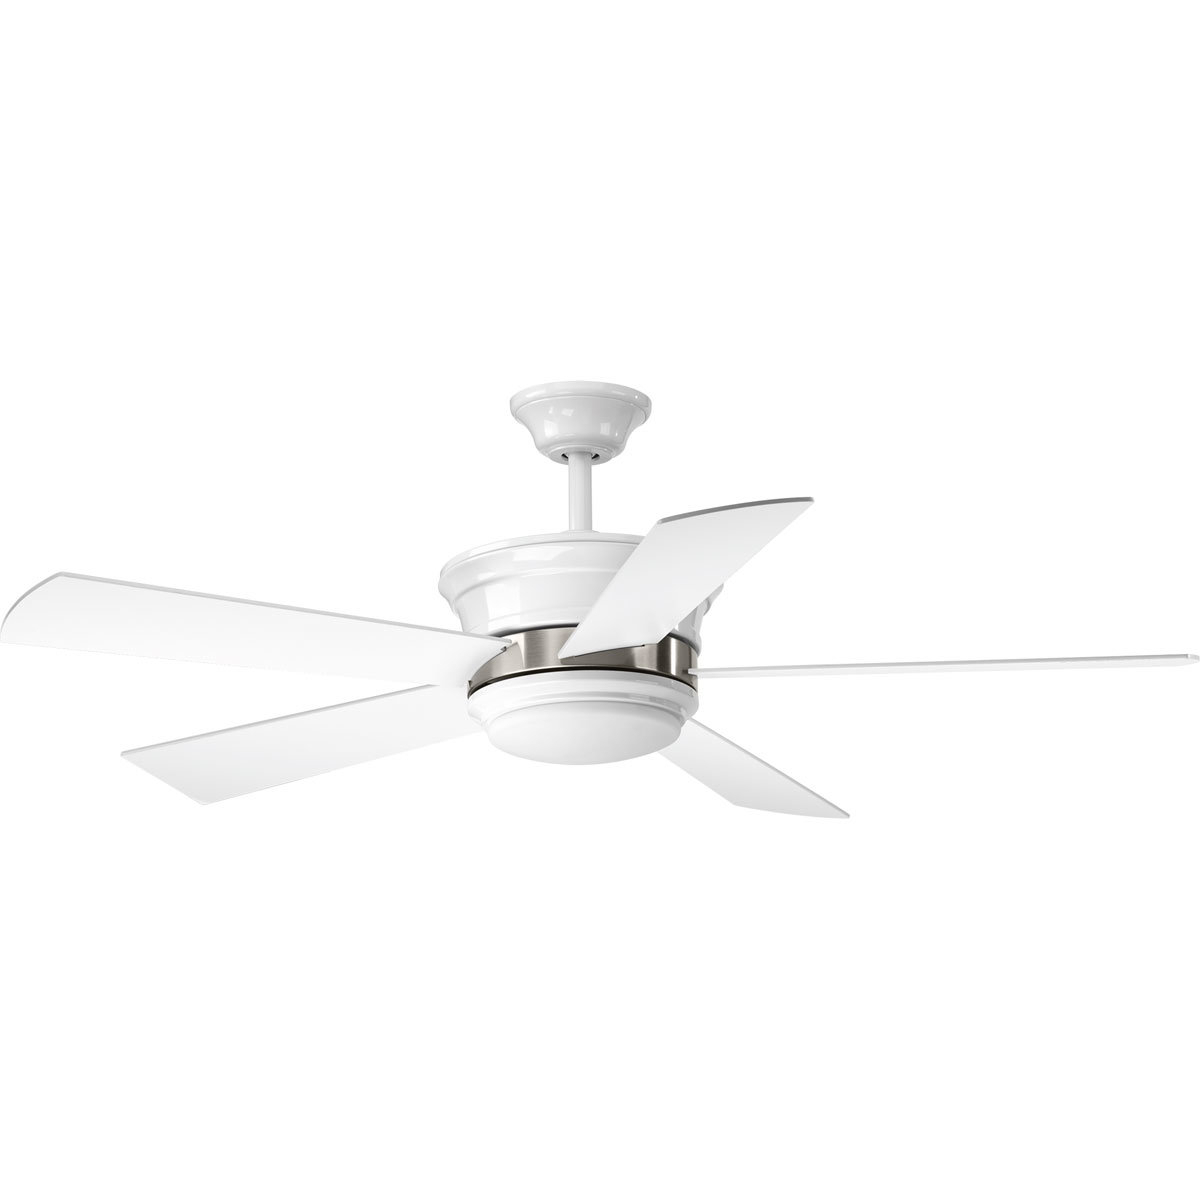 "Favorite 54"" Seaton 5 Blade Led Ceiling Fan With Remote, Light Kit Included Regarding Creslow 5 Blade Ceiling Fans (View 18 of 20)"